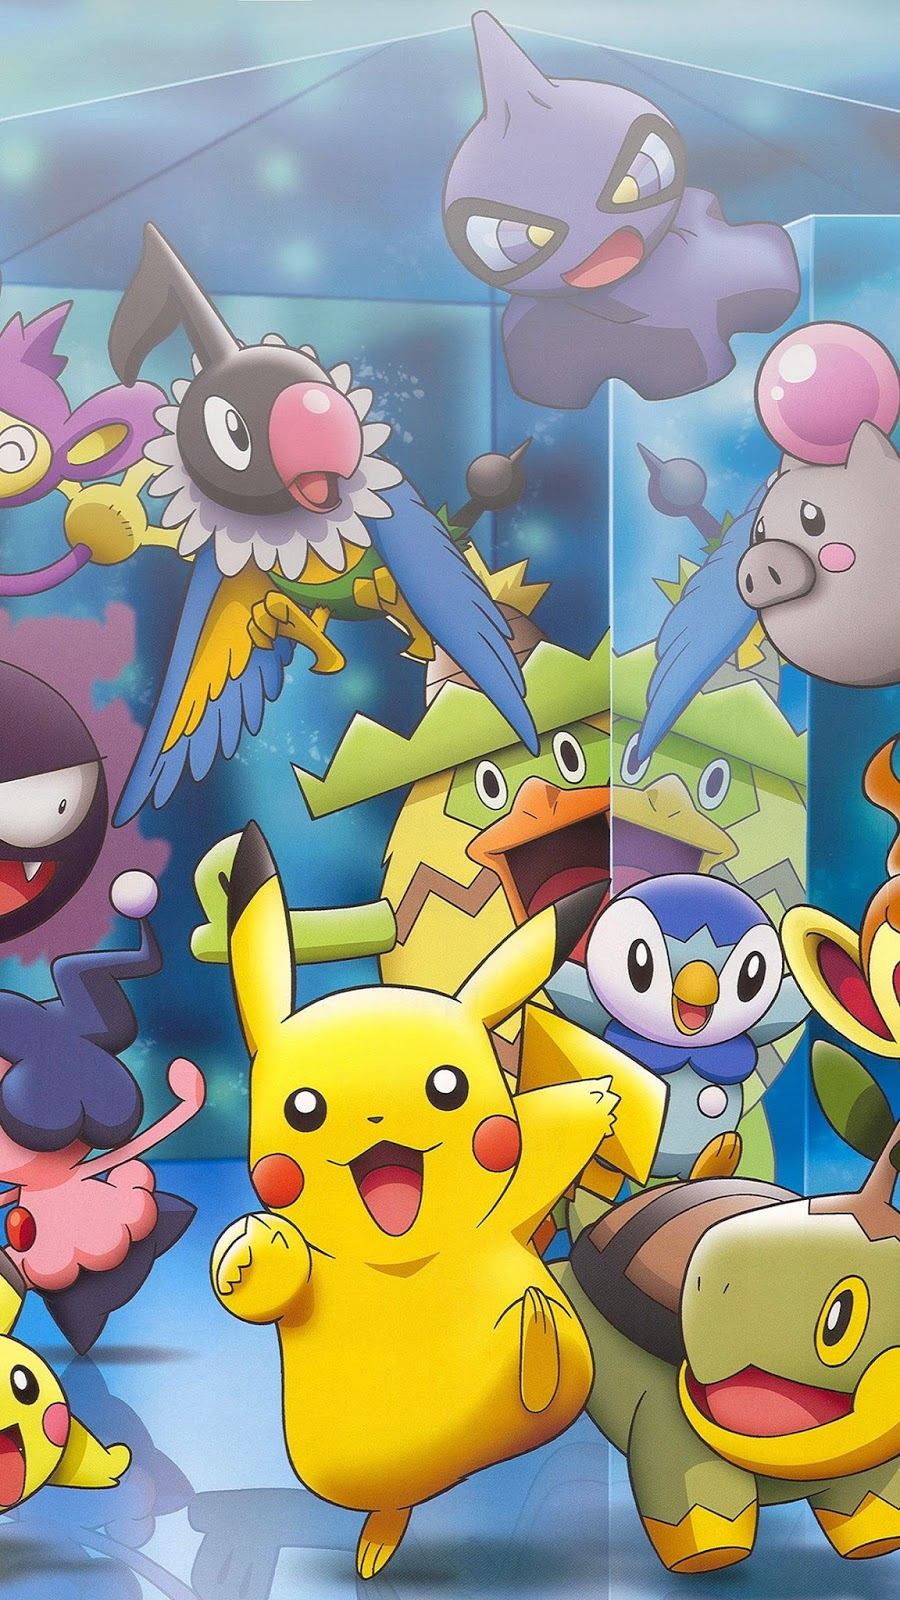 Wallpaper Android Hd Bertema Pokemon Lucu Android Wallpaper Koleksi